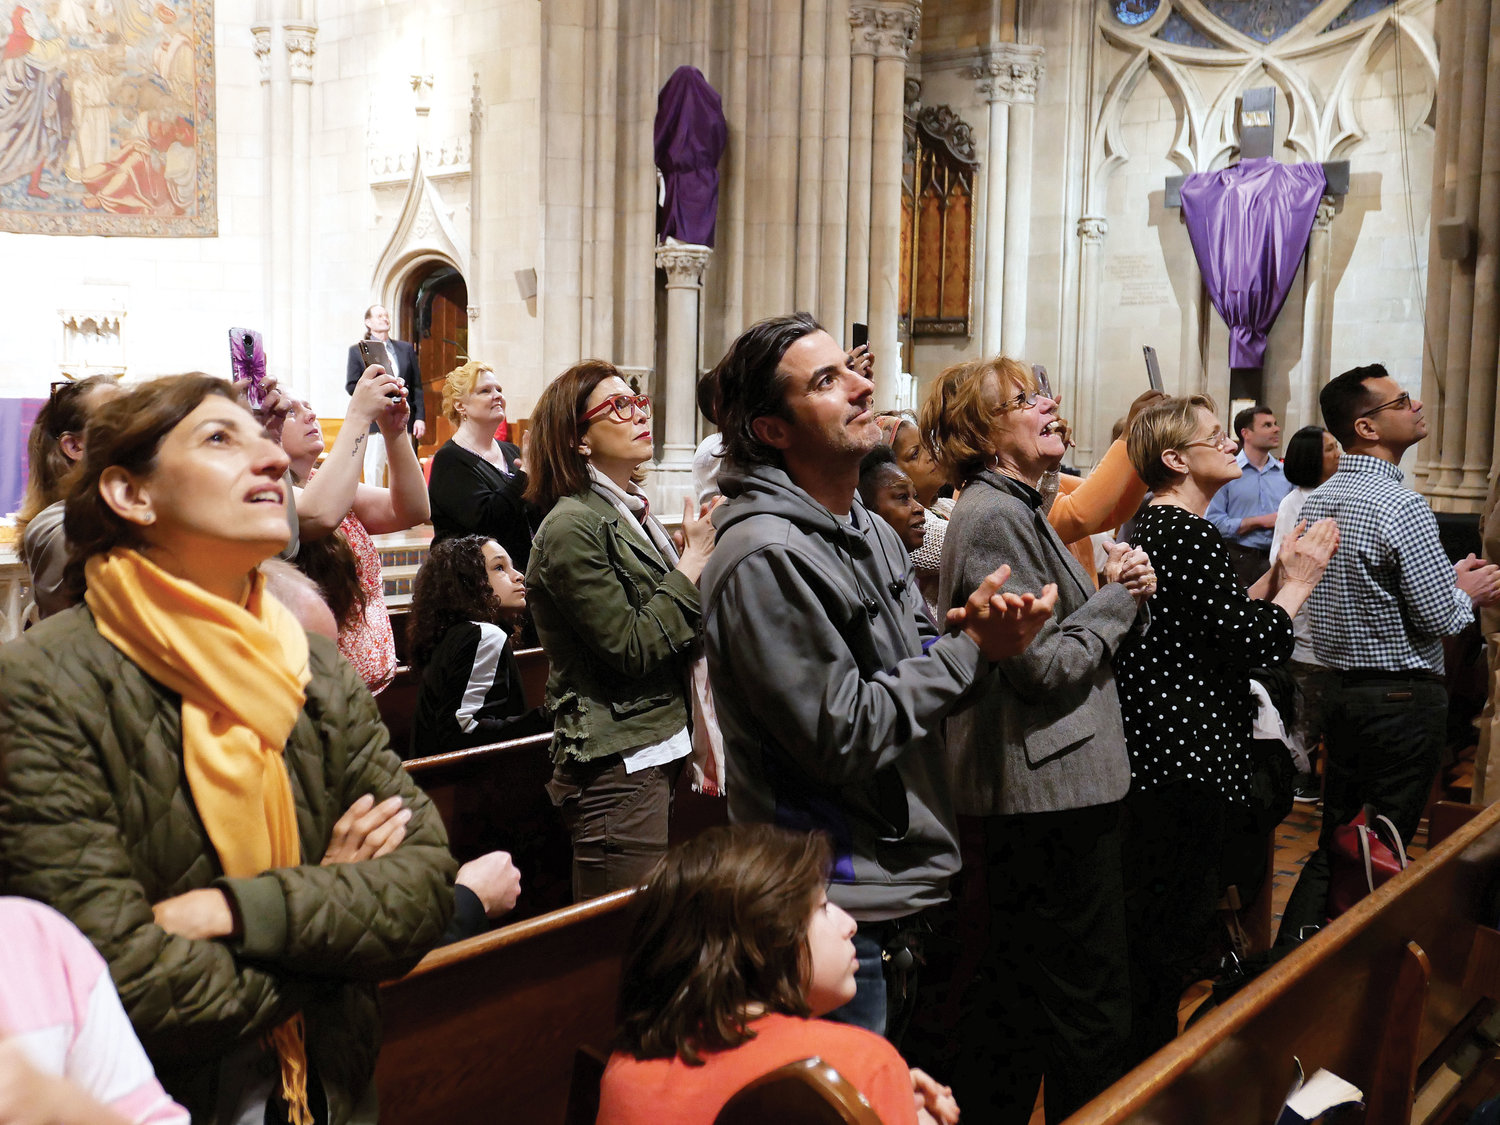 Parishioners like what they see as they gaze at the newly restored Rose Window.